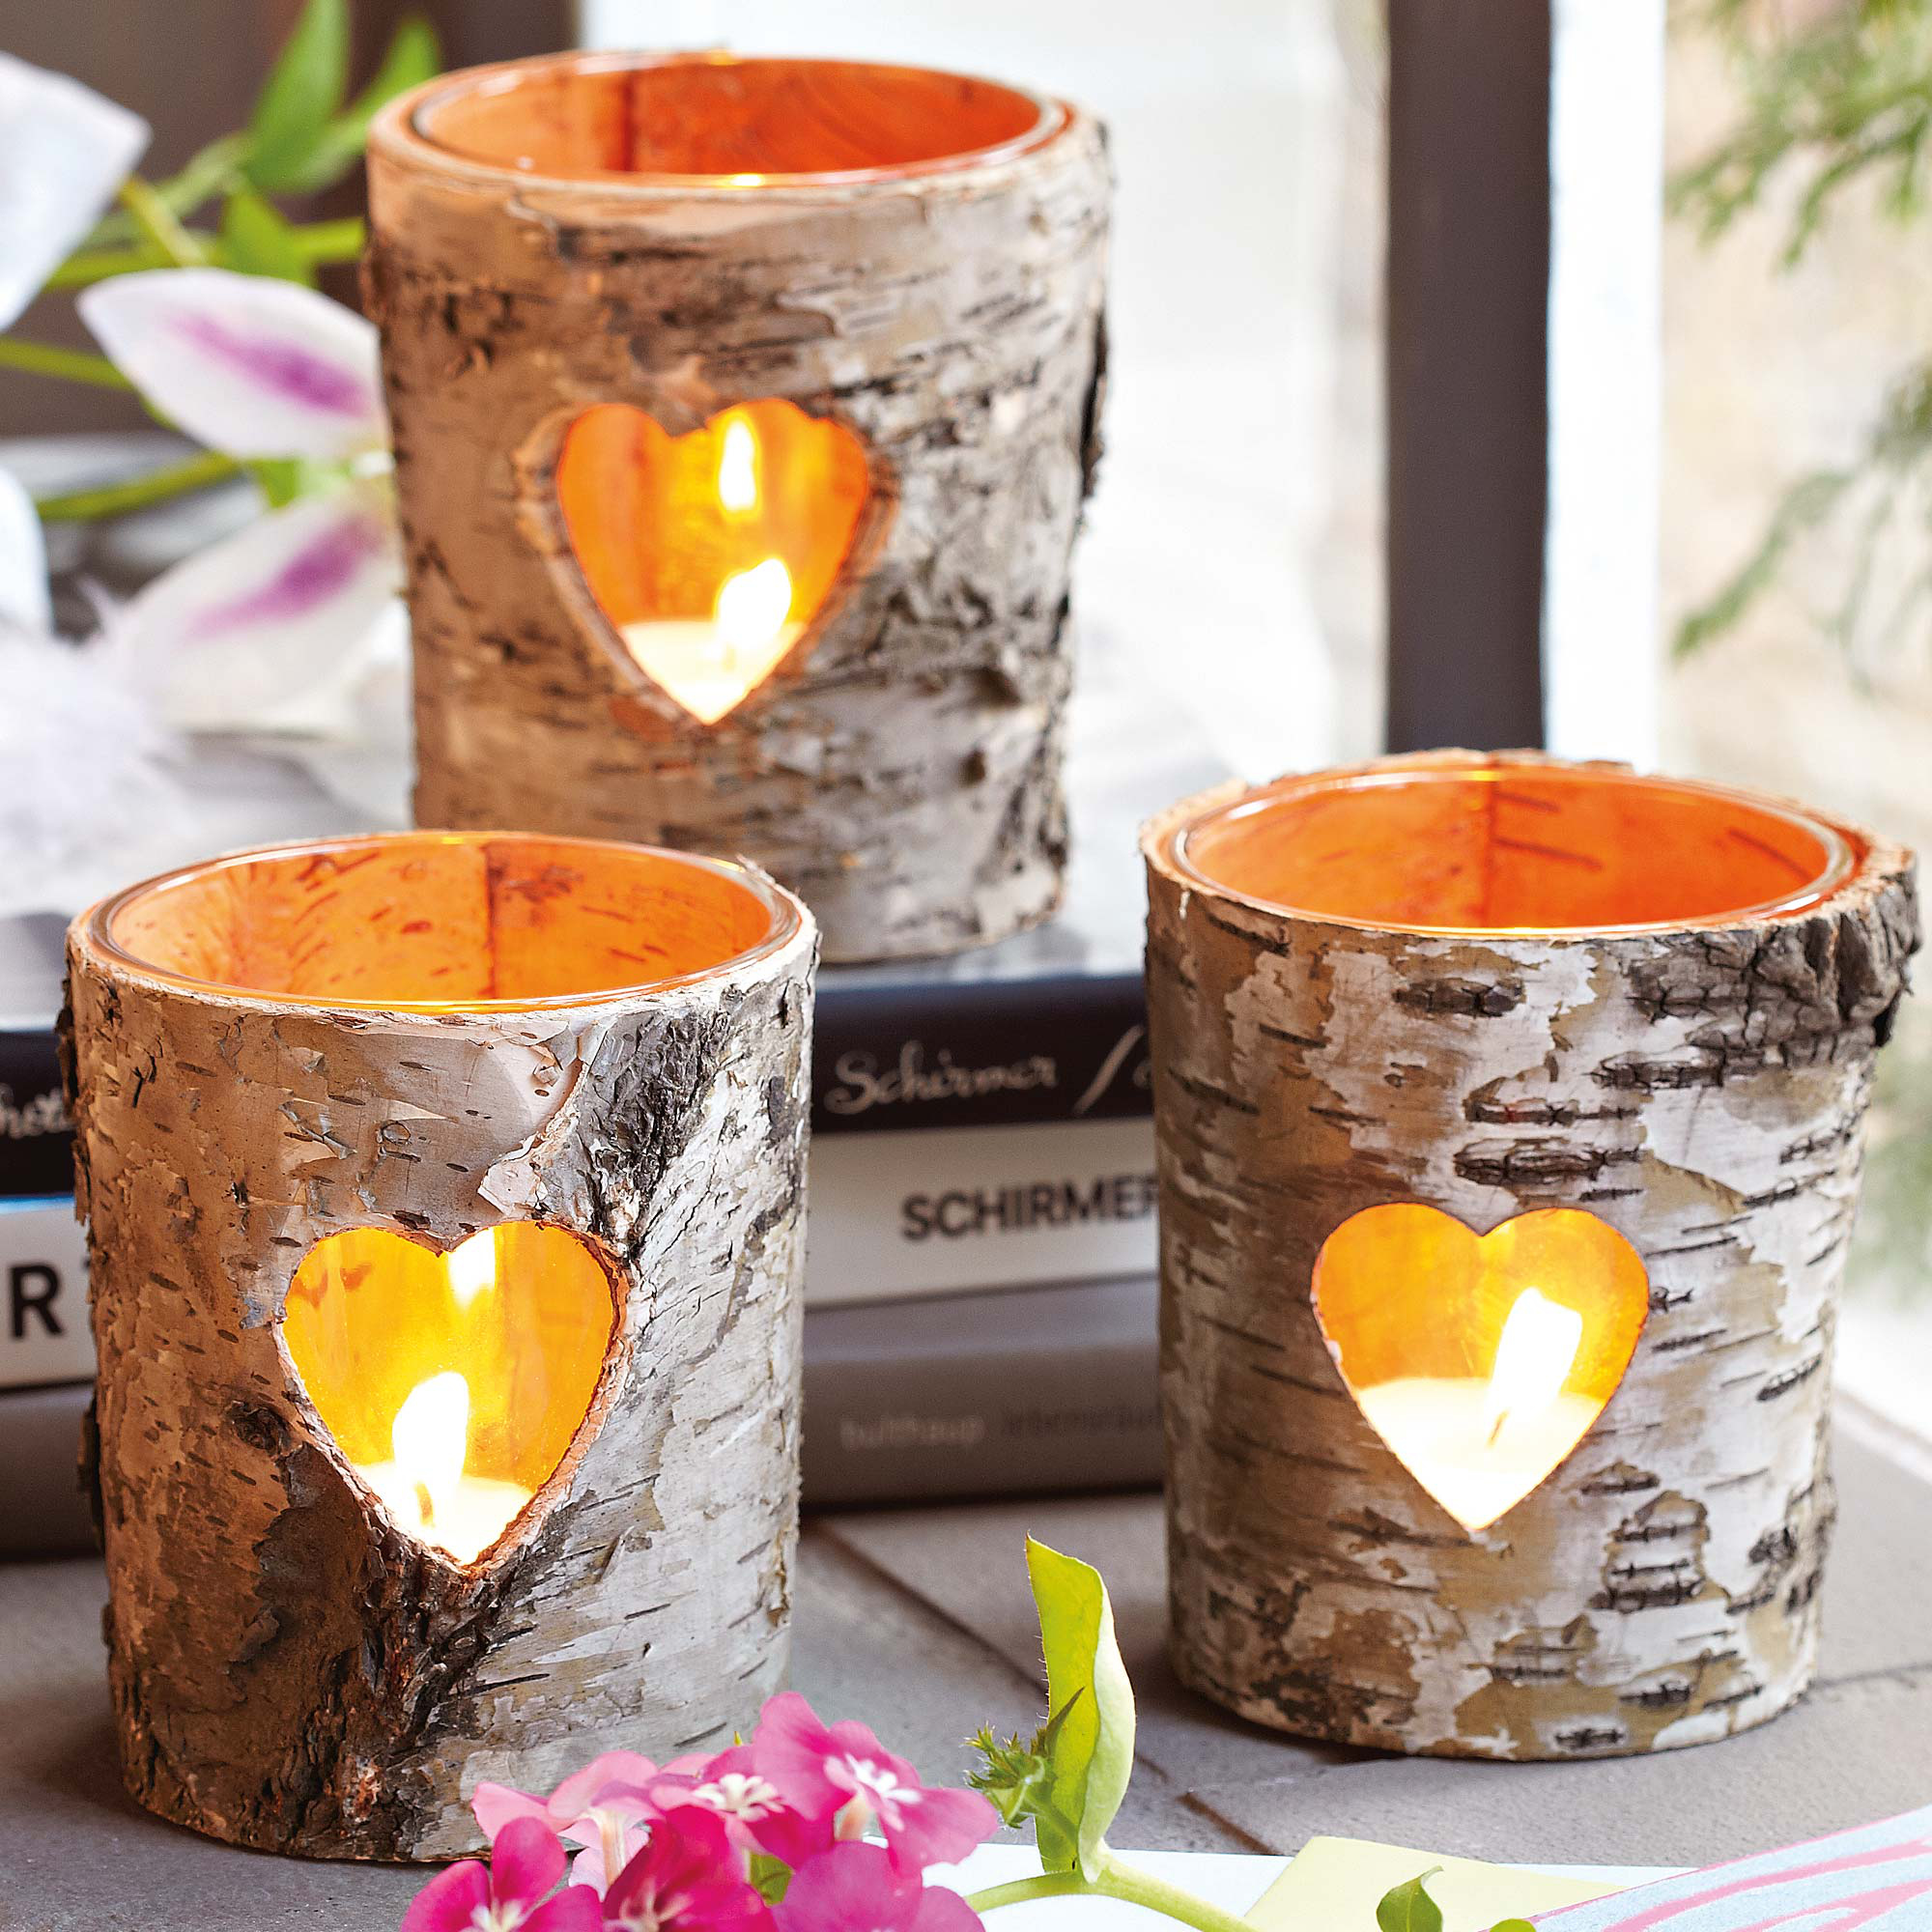 Top 3 Pros Of Purchasing Candles From Small Business